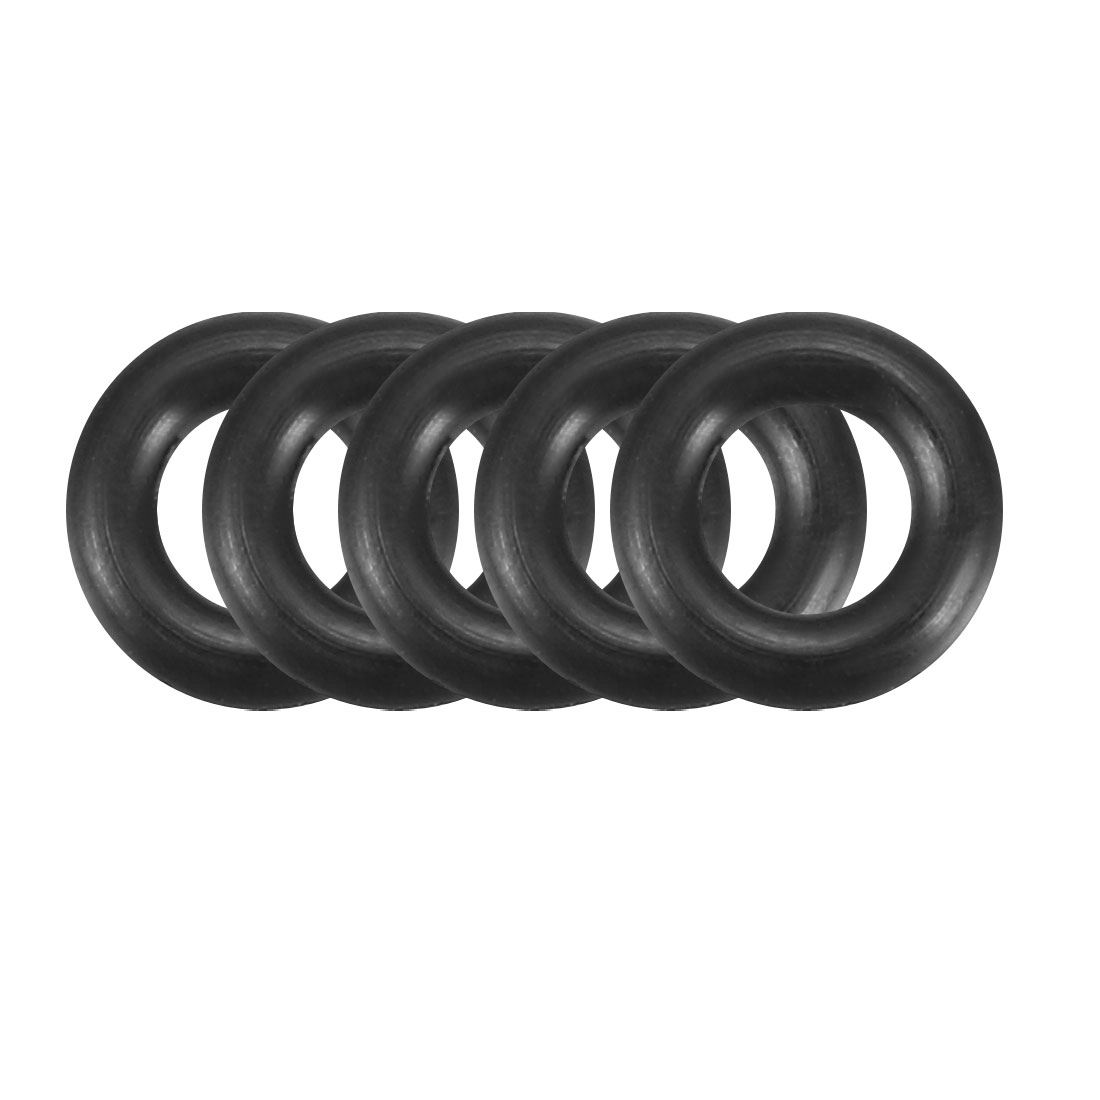 100Pcs Black 6mm x 1.5mm Nitrile Rubber O Ring NBR Oil Sealing Grommets